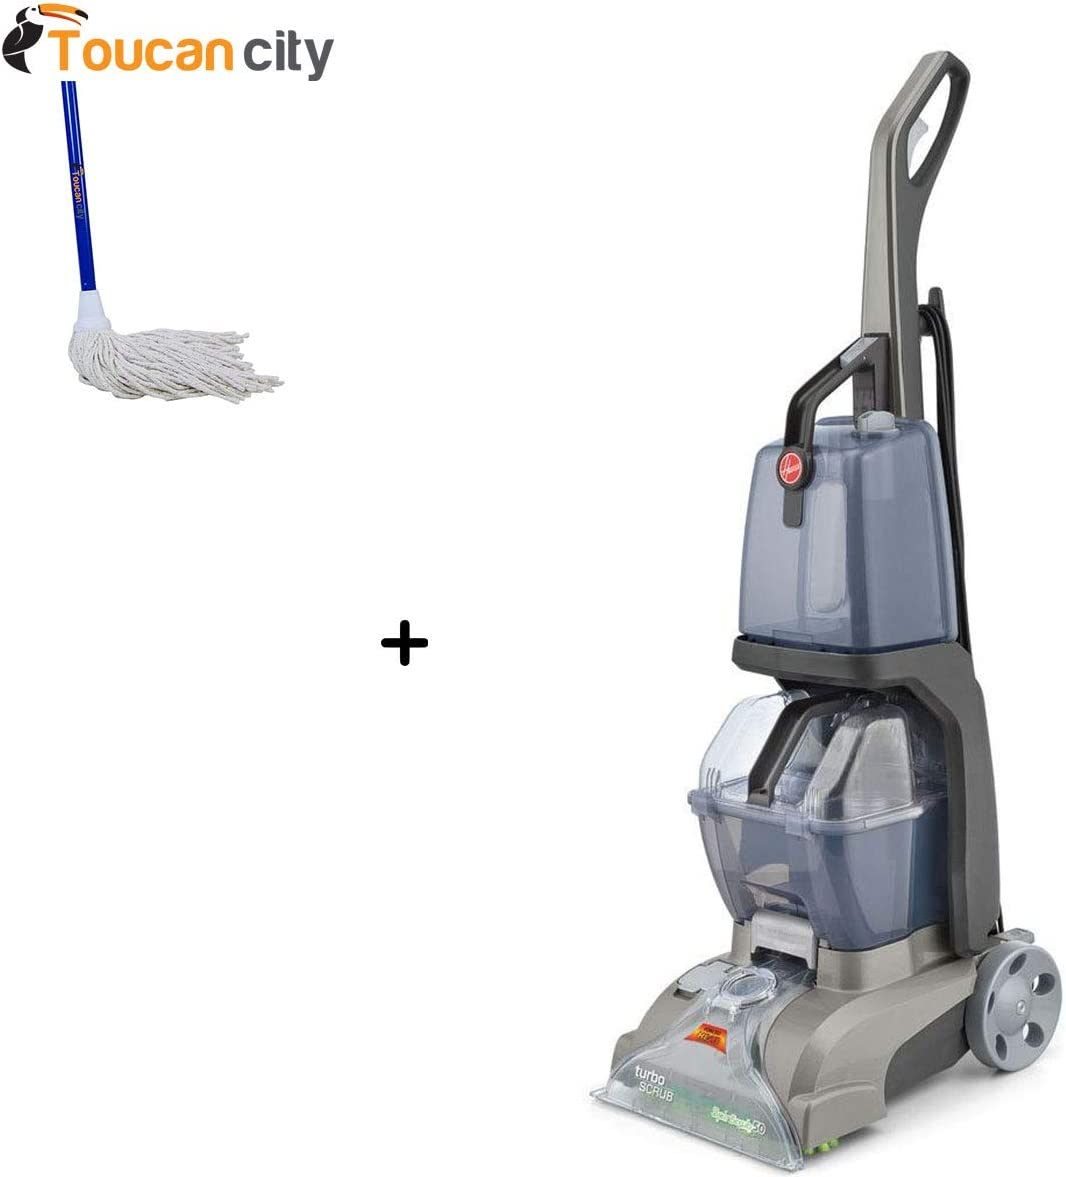 Toucan City String Mop and Hoover Turbo Scrub Upright Carpet Cleaner FH50134